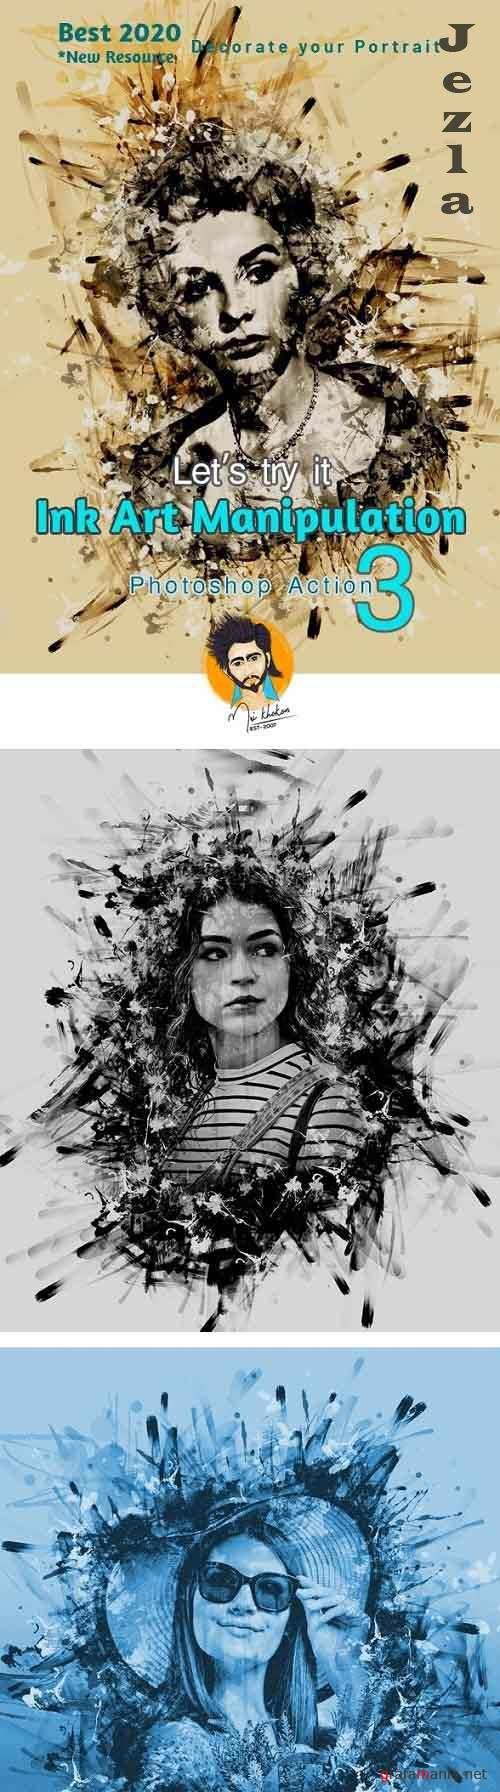 GraphicRiver - Ink Art Manipulation Photoshop Action 29099369